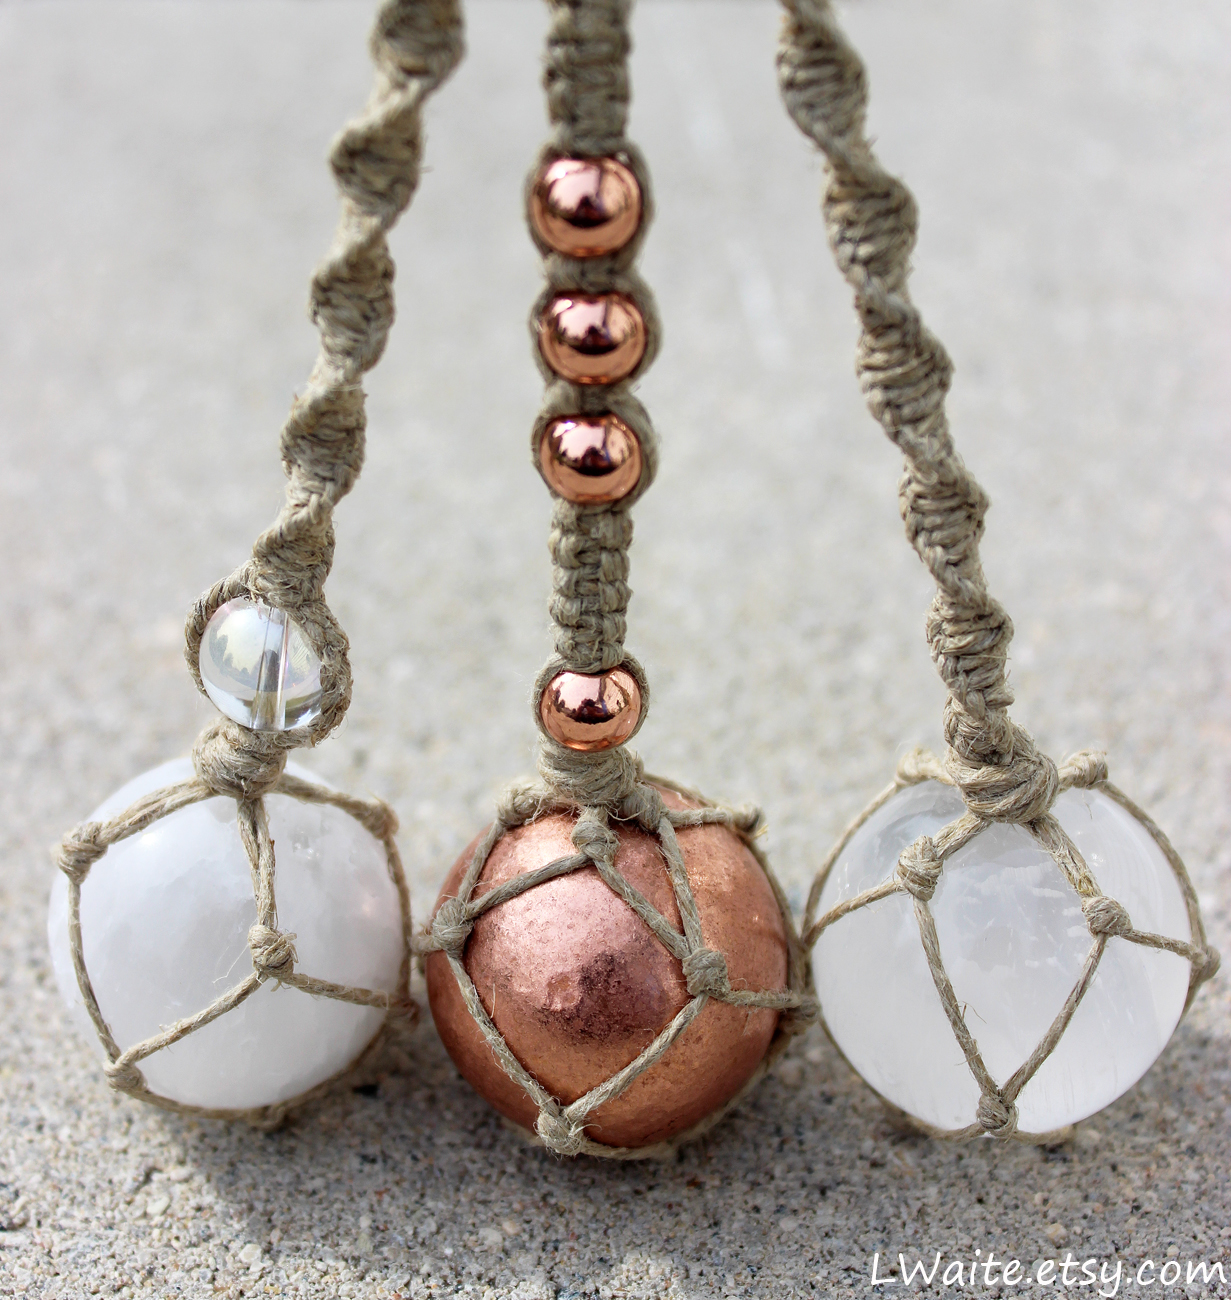 Selenite and Copper Rear View Mirror Charms by LWaite